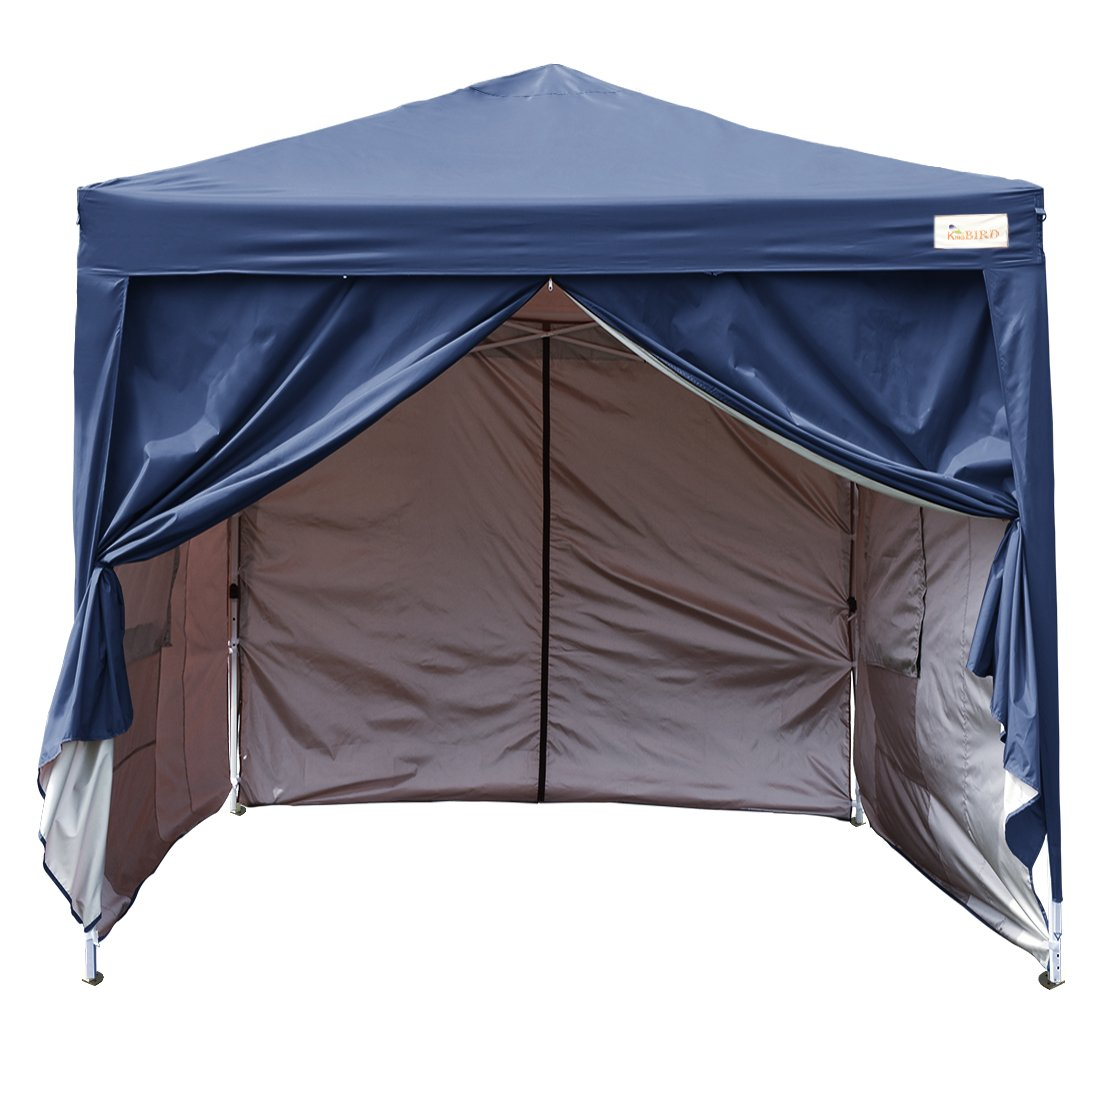 Kingbird 10 x 10 ft Easy Pop up Canopy Waterproof Party Tent 4 Removable Walls Mesh Windows with Carry Bag-7 Colors (navy blue)